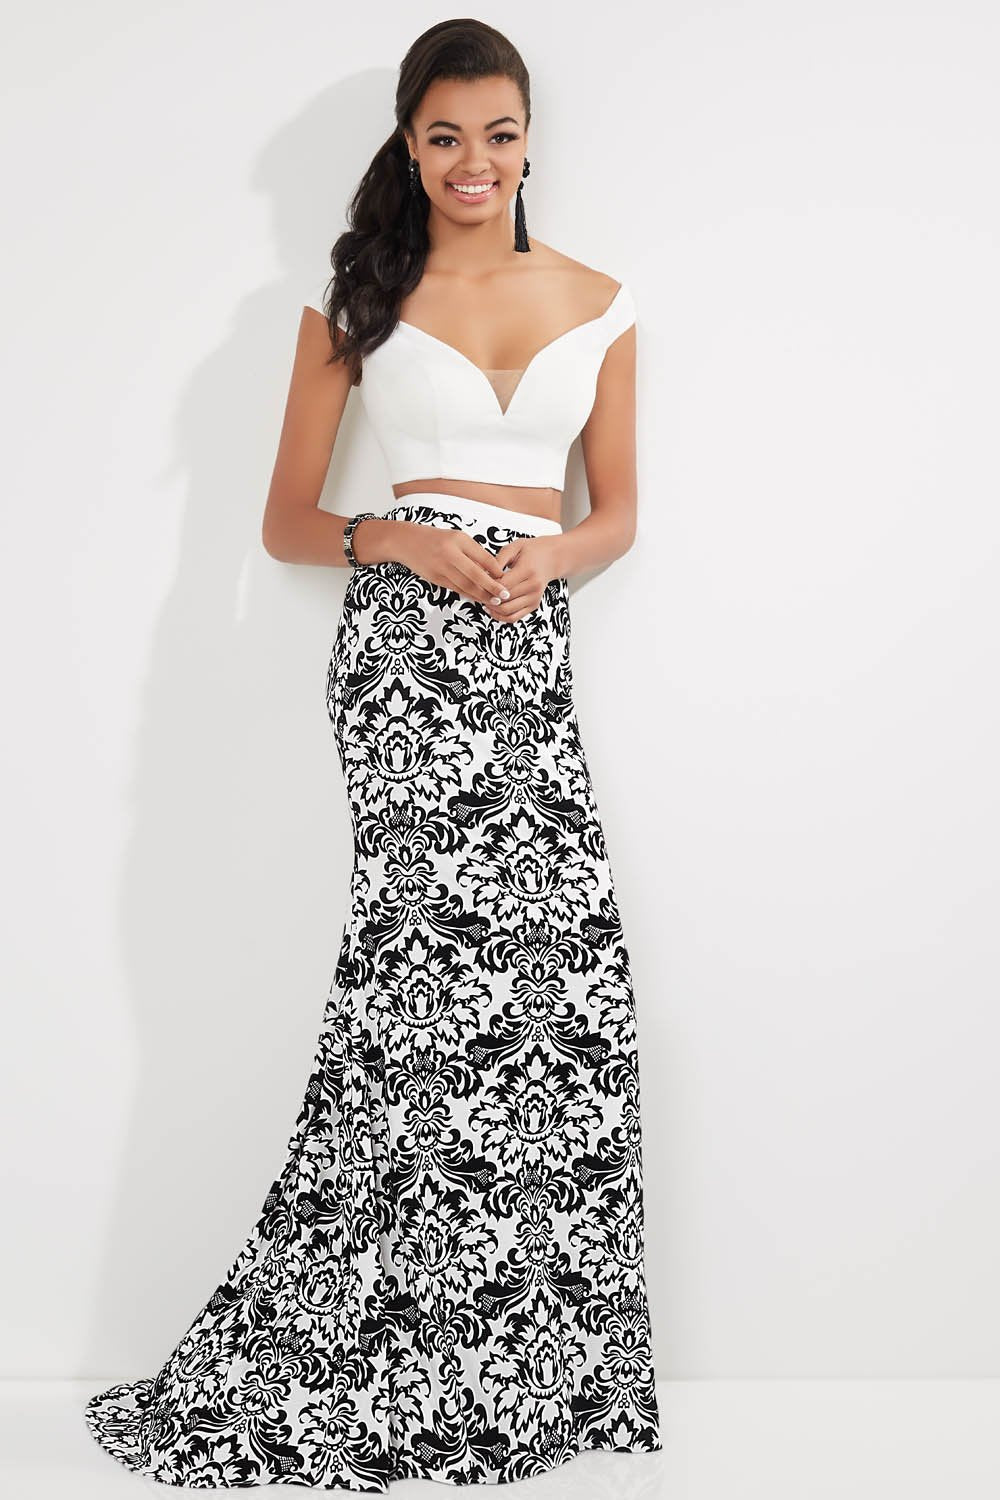 Studio 17 12712 prom dress images.  Studio 17 12712 is available in these colors: Black Print, White Print.